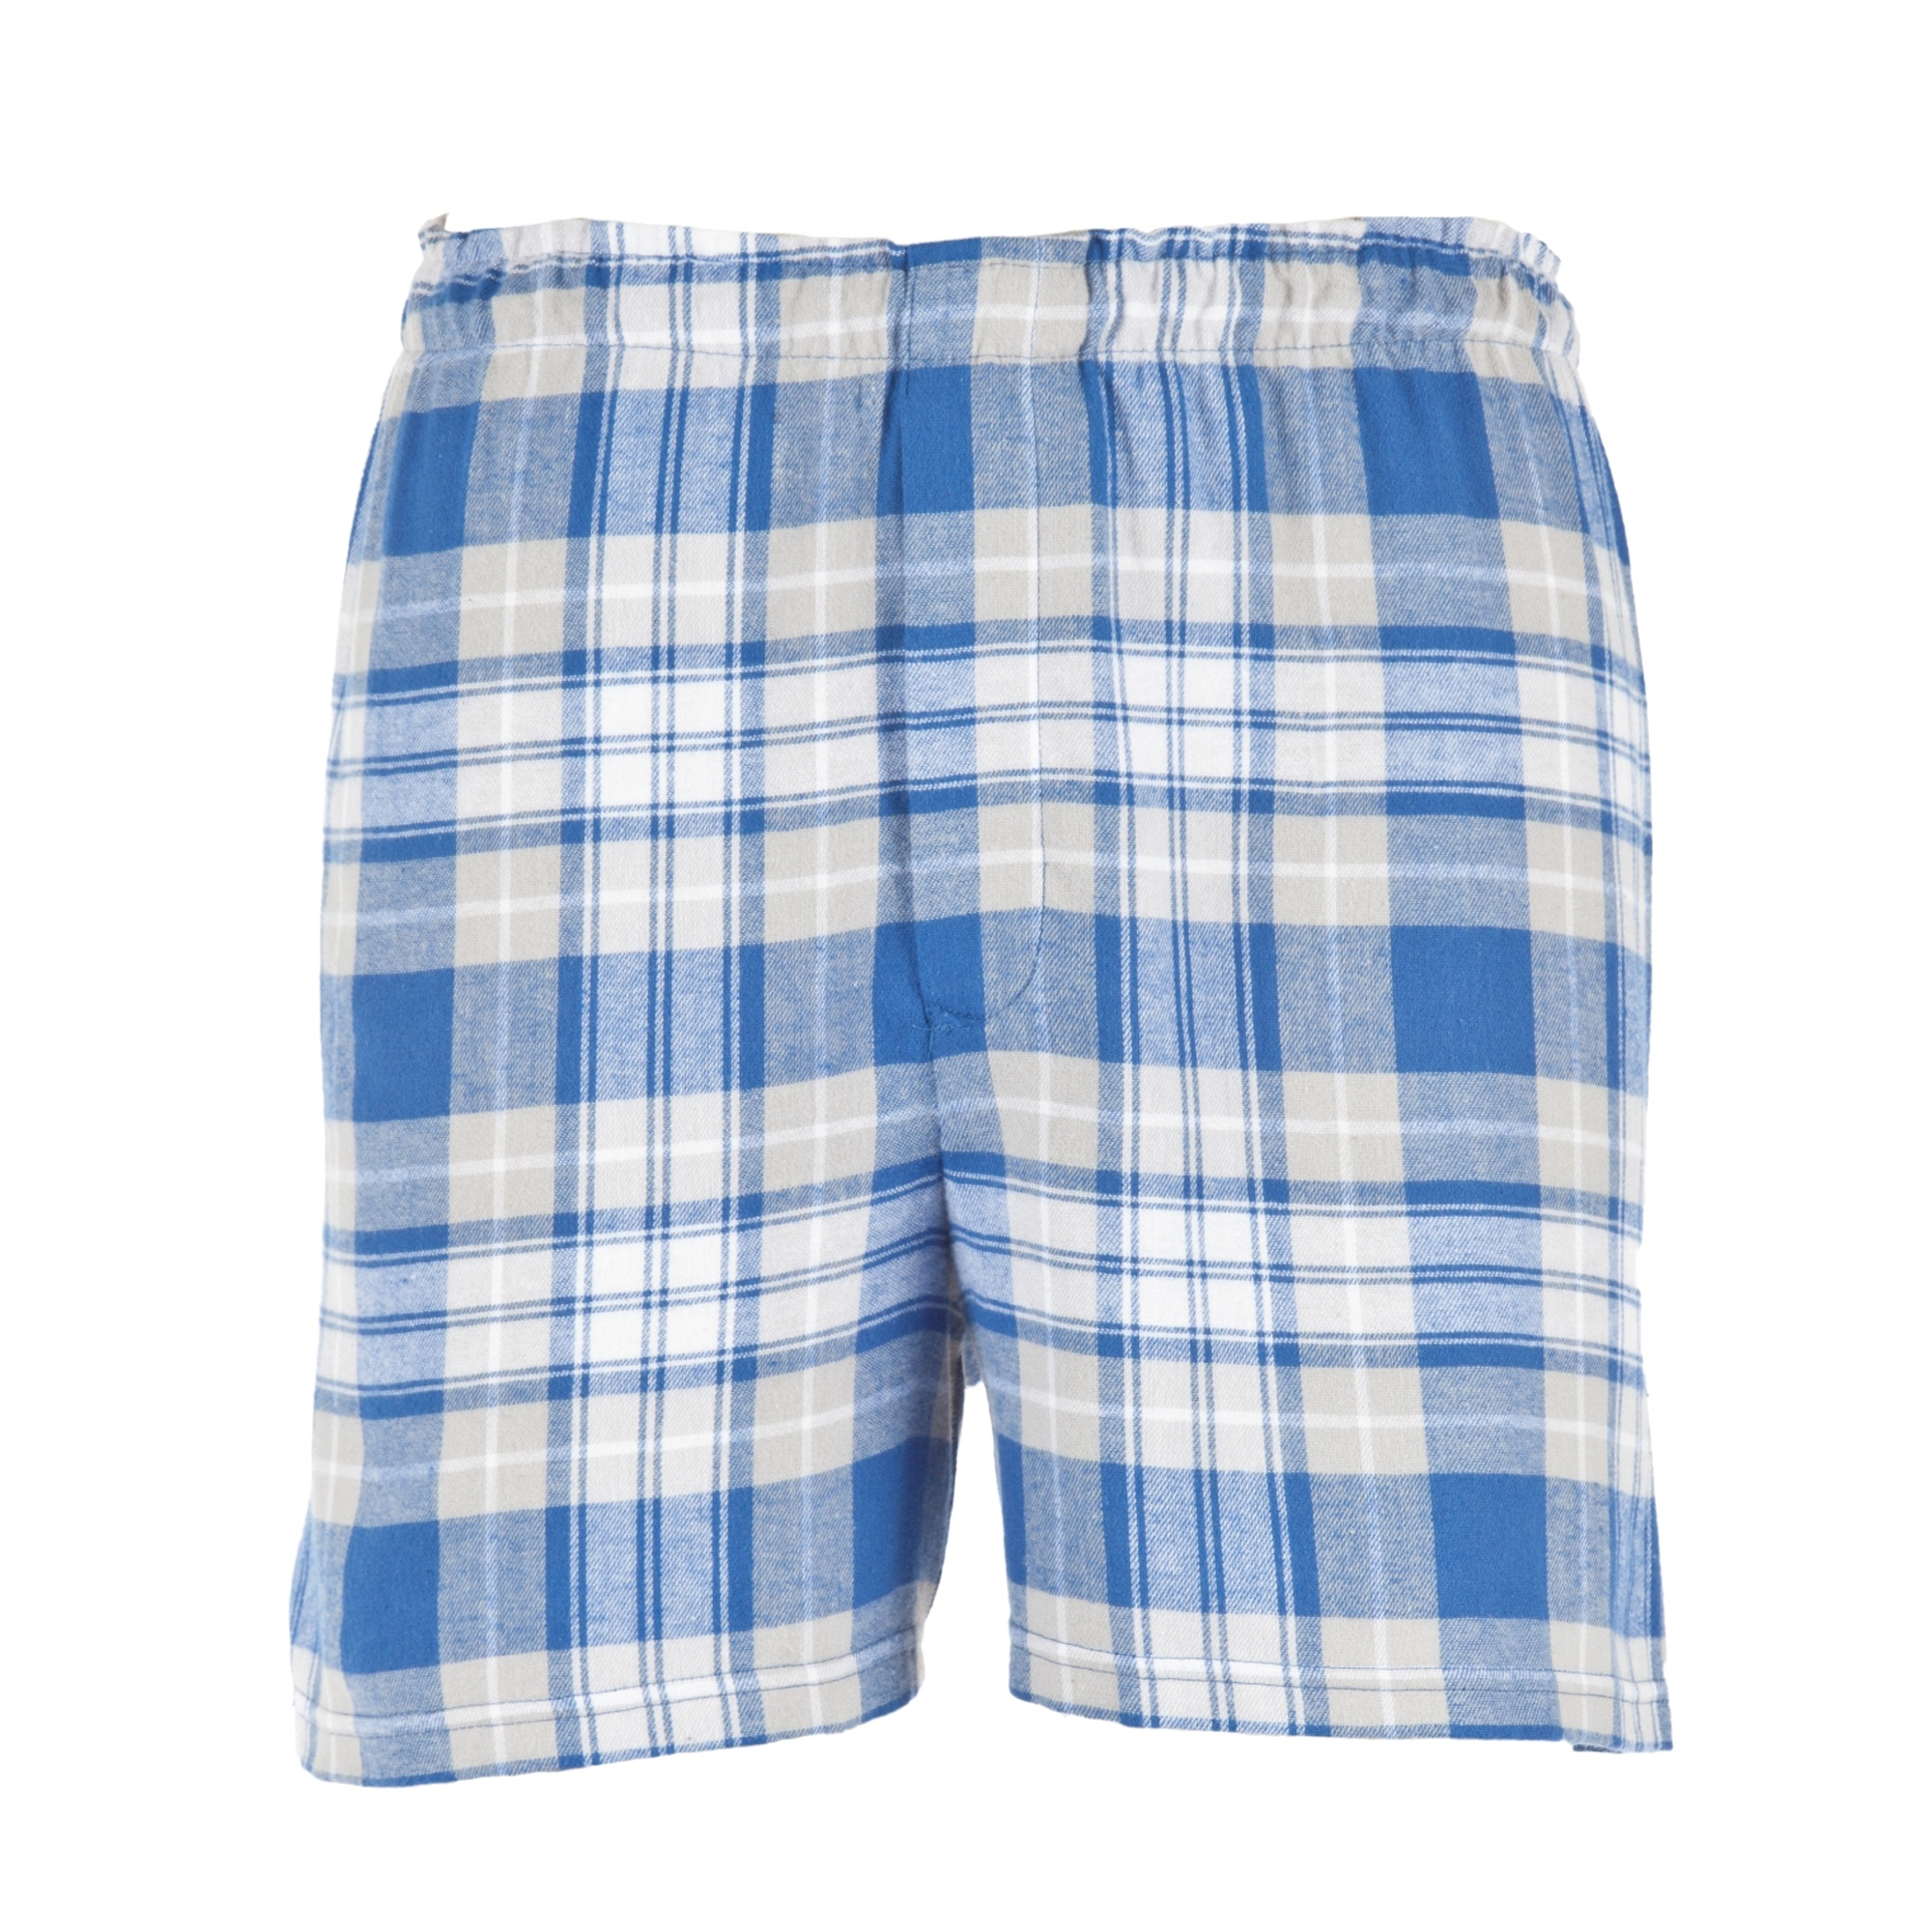 Shop Men's Underwear & Pajamas at teraisompcz8d.ga Find pajamas, super soft undershirts and comfortable boxers in an assortment of clever patterns and rich colors. Skip to Main Content. new. Shop New Arrivals. for Women; for Men Flannel pajama pant in buffalo check $ available in 2 colors.